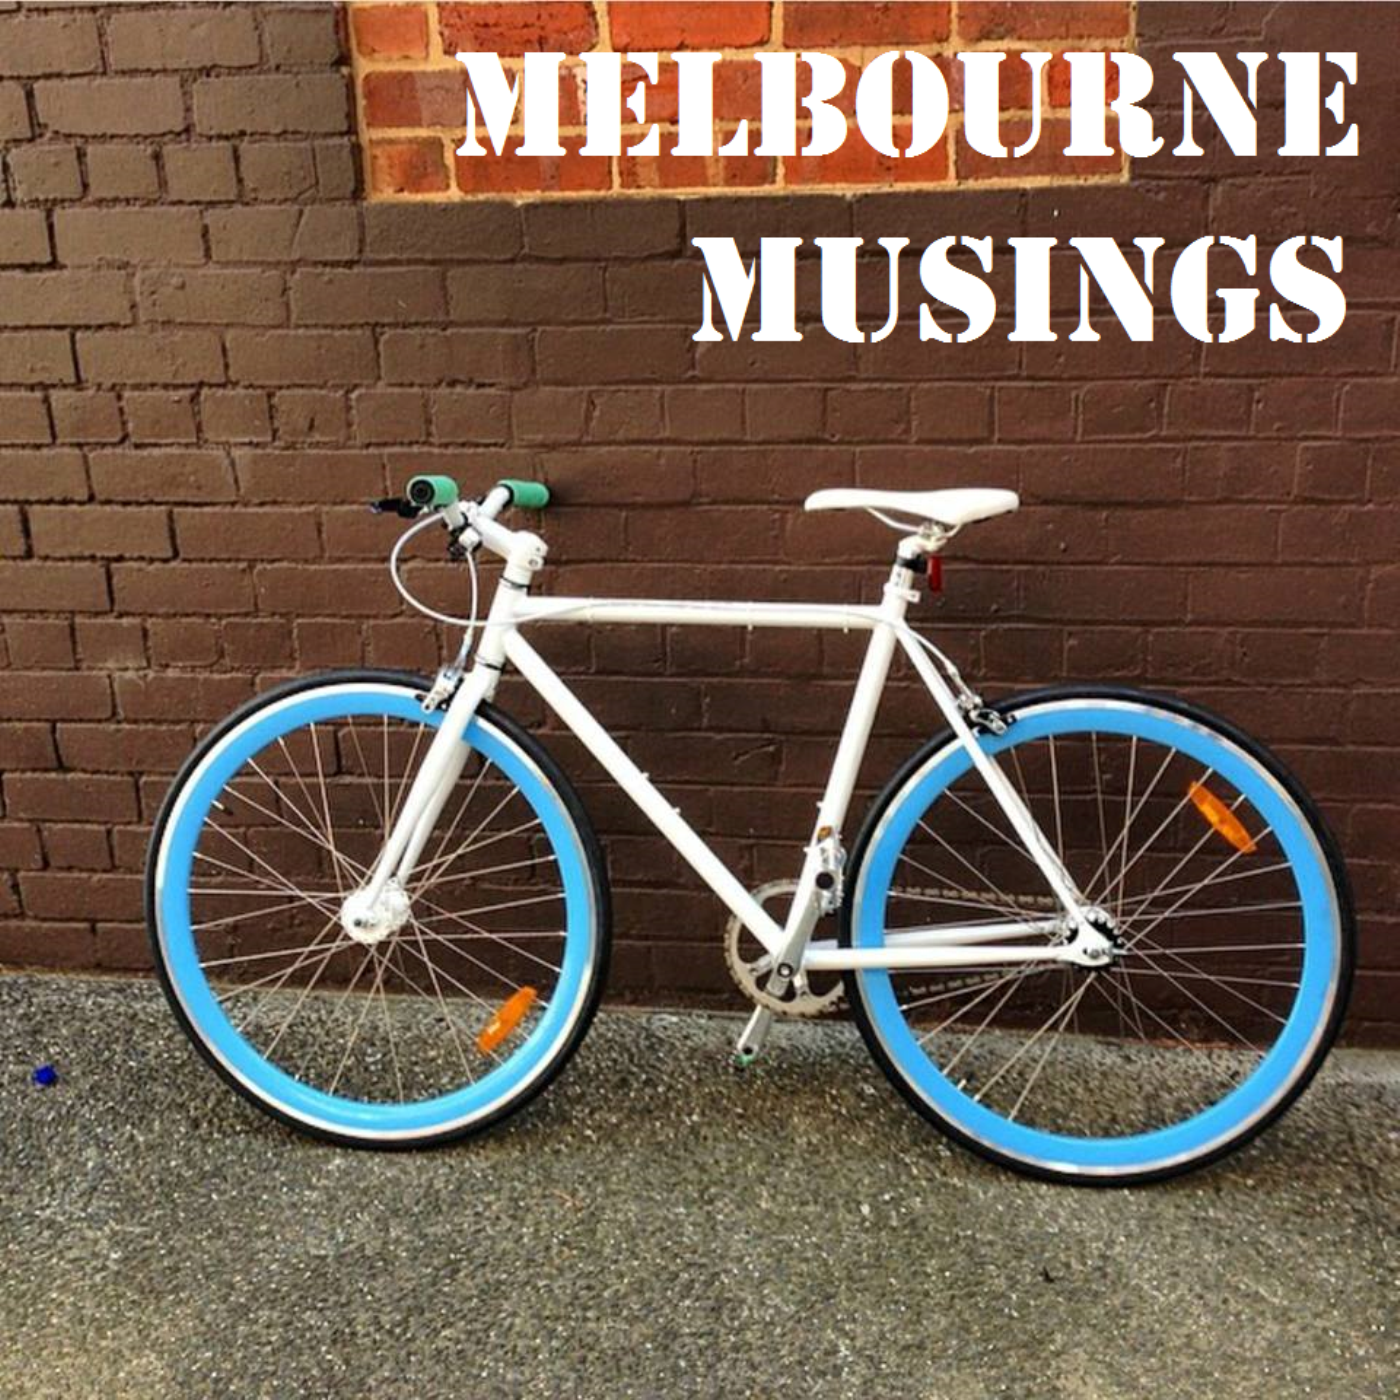 Melbourne Musings Episode 79 show art